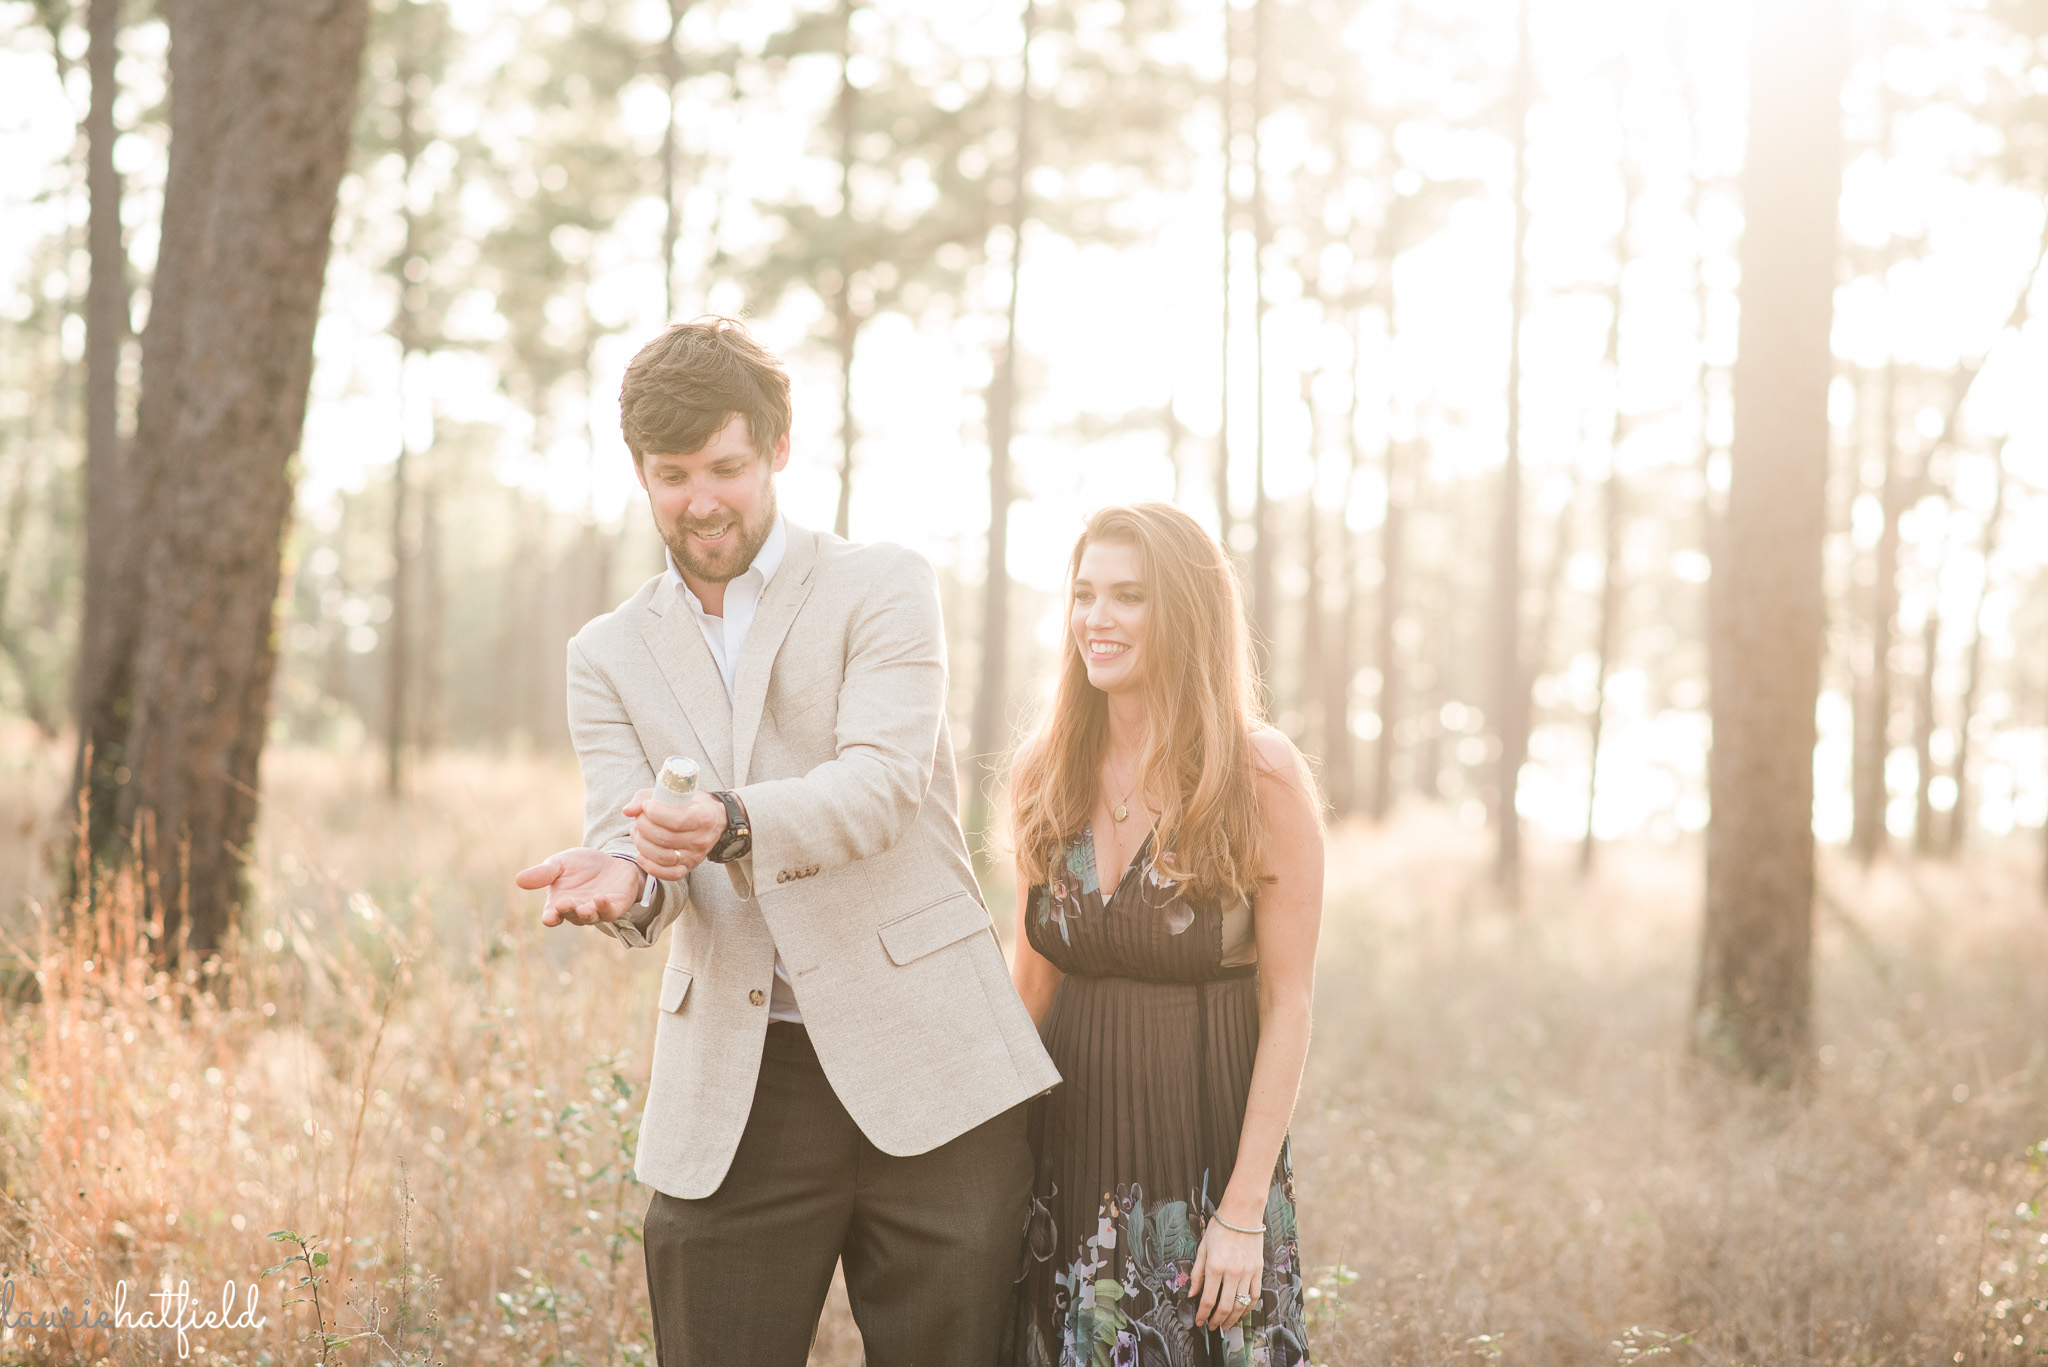 gender reveal photo session | Mobile AL photographer